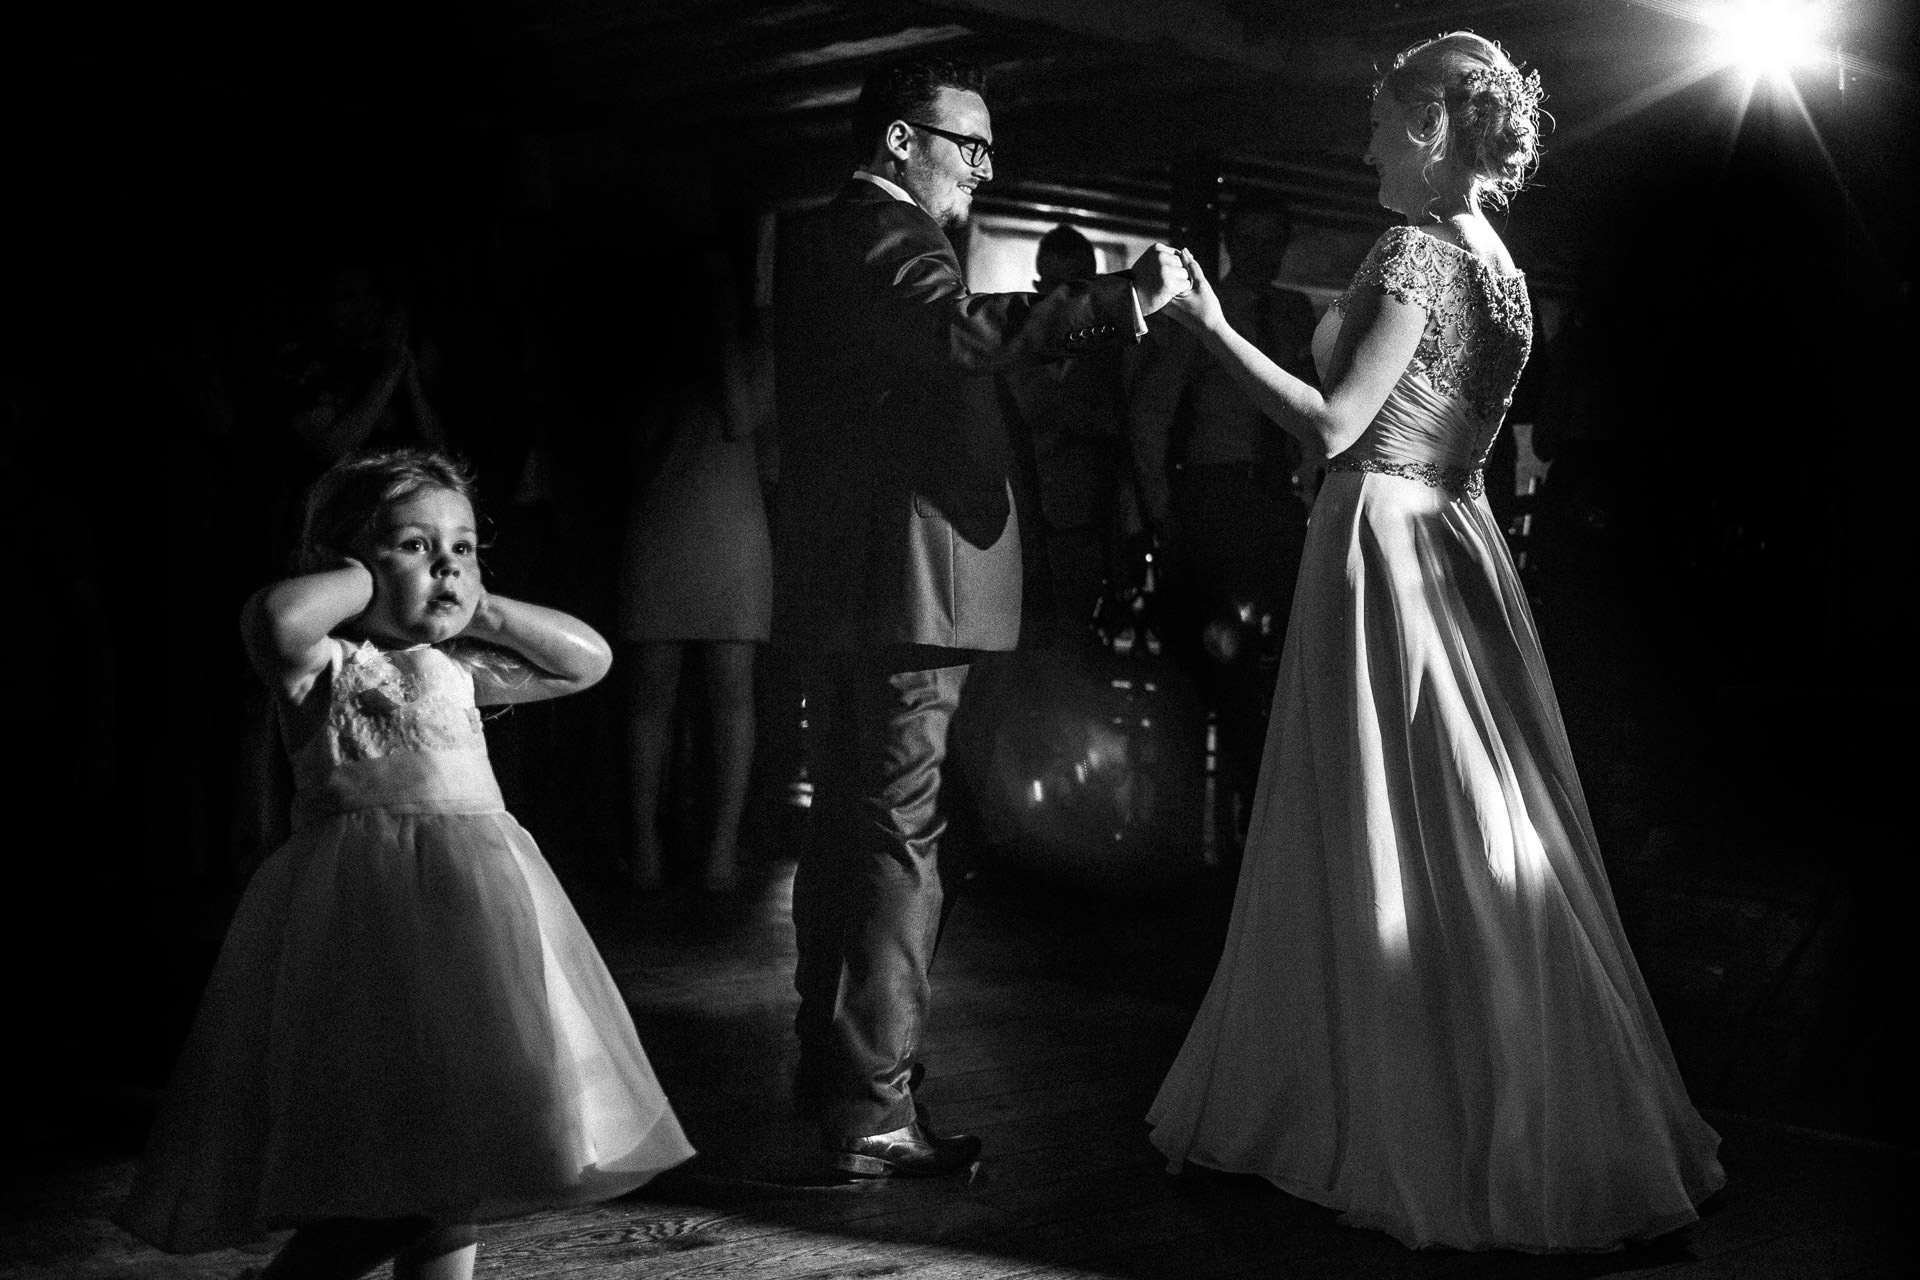 The Wild Boar Wedding Photography - EM - wide shot of couples first dance with girl